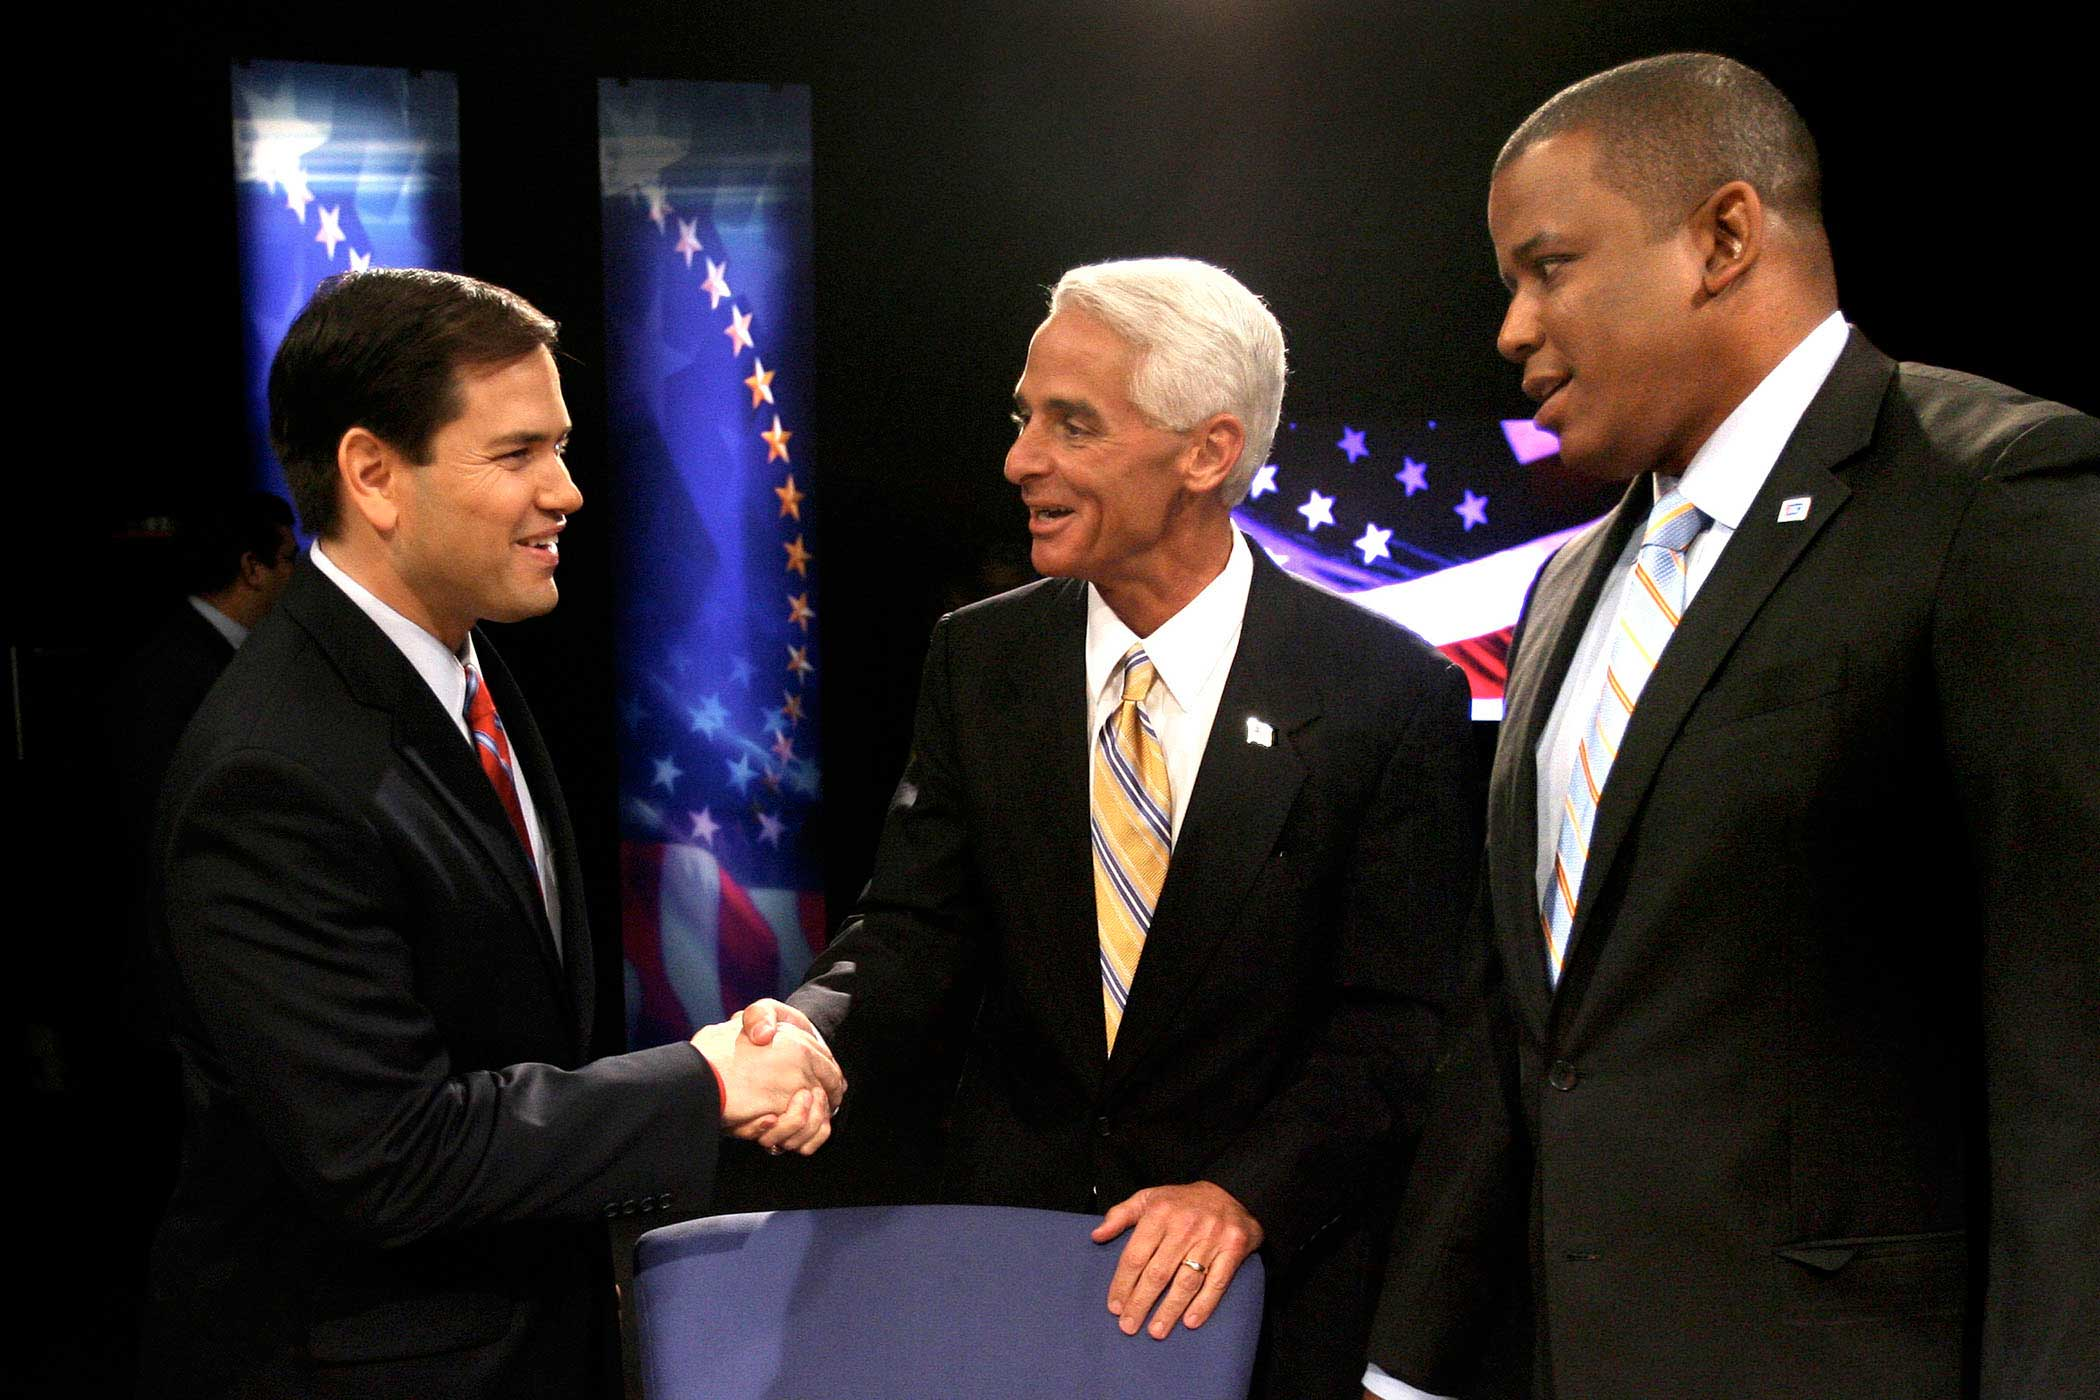 From left, Marco Rubio, Charlie Crist and Kendrick Meek greet each other before the start of their debate at the studios of WESH-TV in Winter Park, Fla., on Oct. 26, 2010.